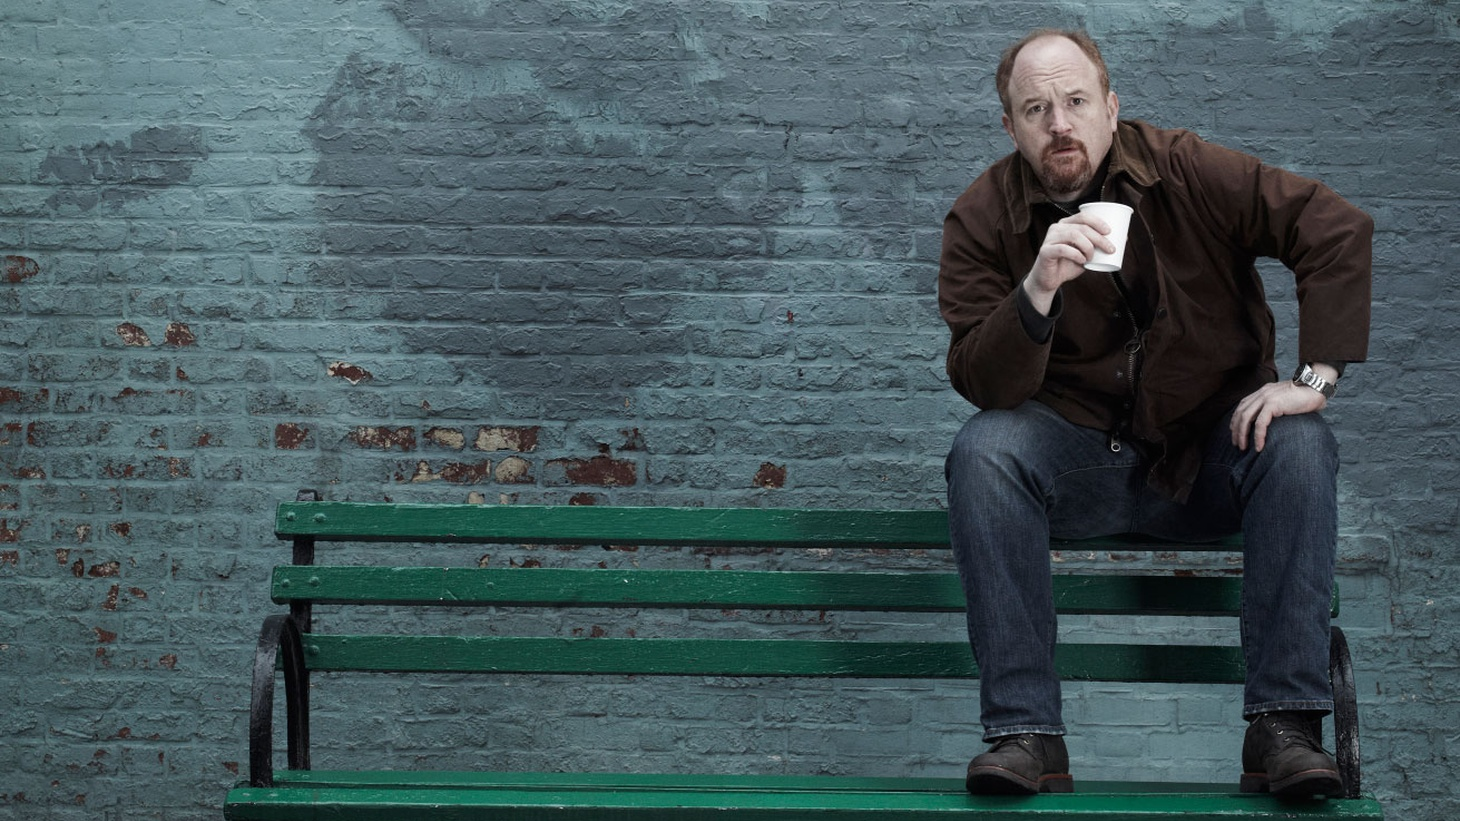 When comedian Louis C.K. created and self-financed his new web series Horace and Pete, he kept the production a secret and did absolutely no advertising. He tells us about risking his own money and making Horace and Pete completely on his own terms.